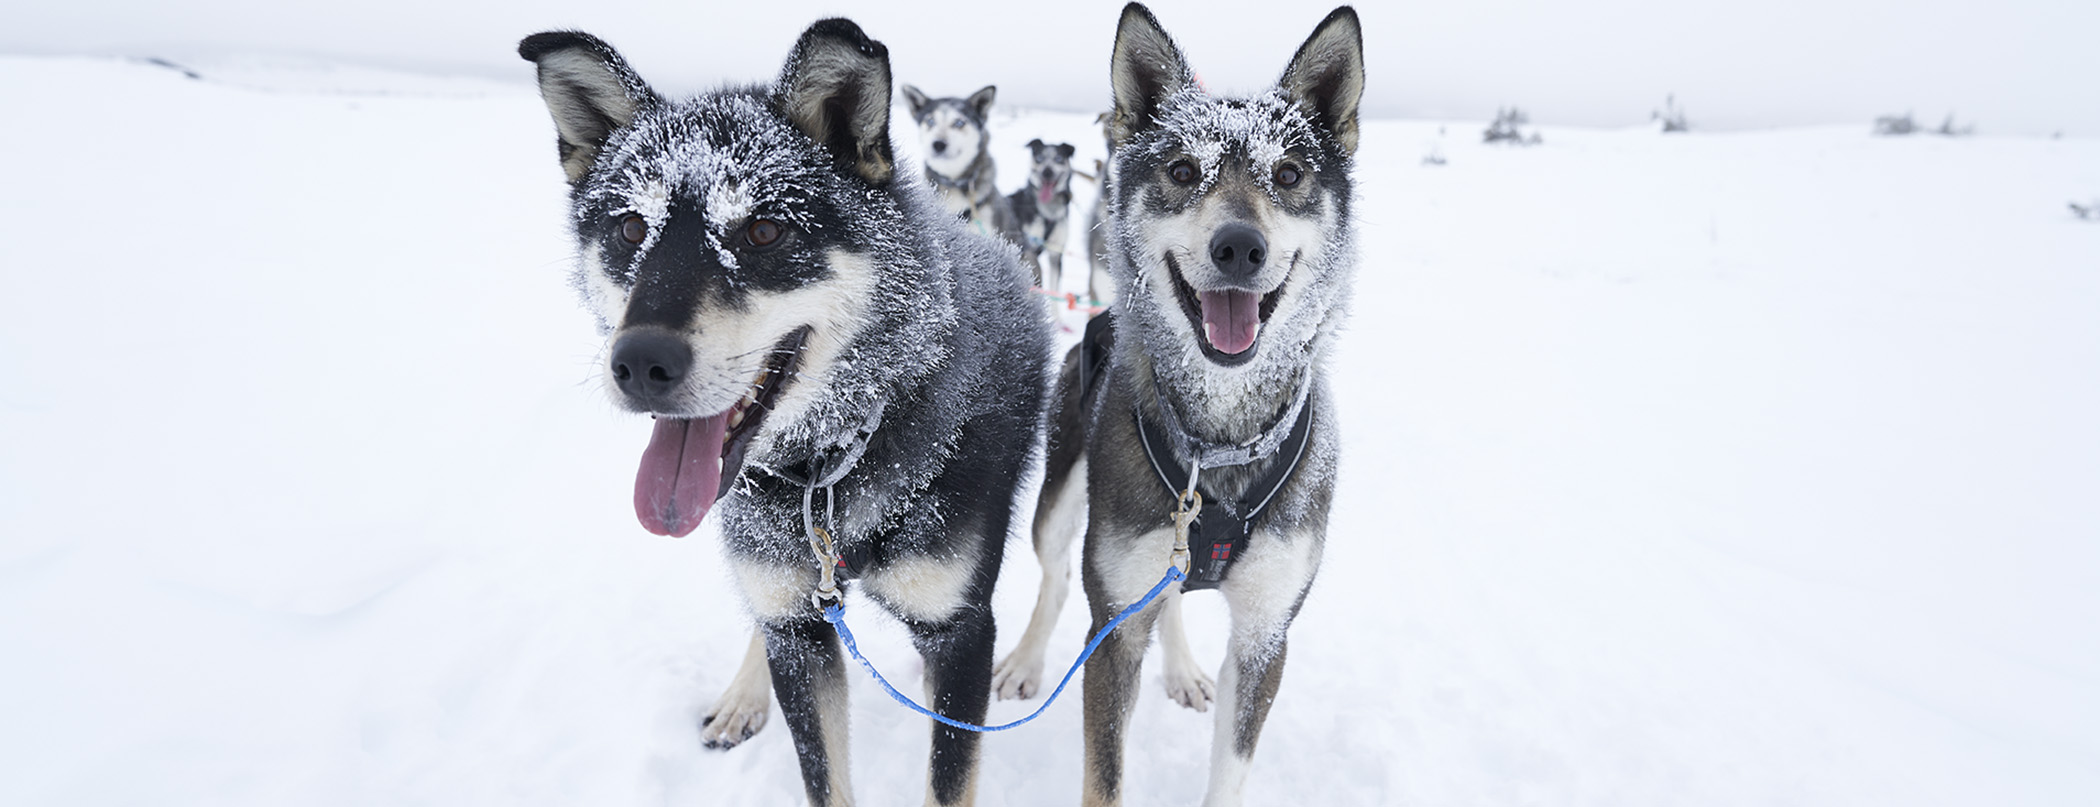 DogSled racing dogs QRILL Pet